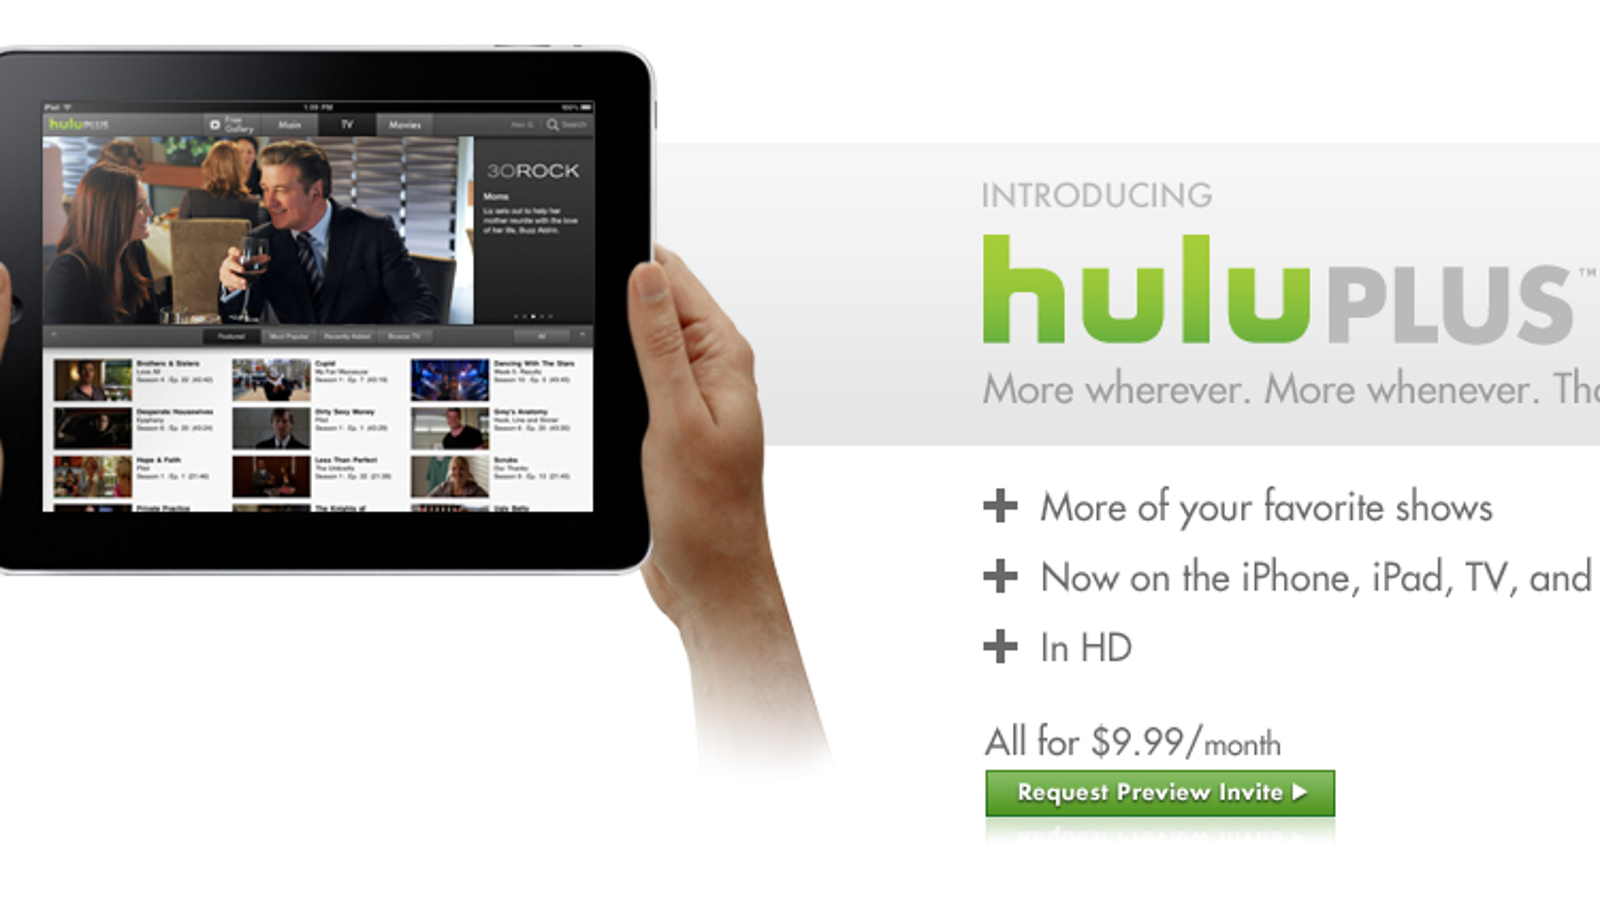 Hulu Plus is Real: $10/Month for iPhone, iPad and TV Viewing